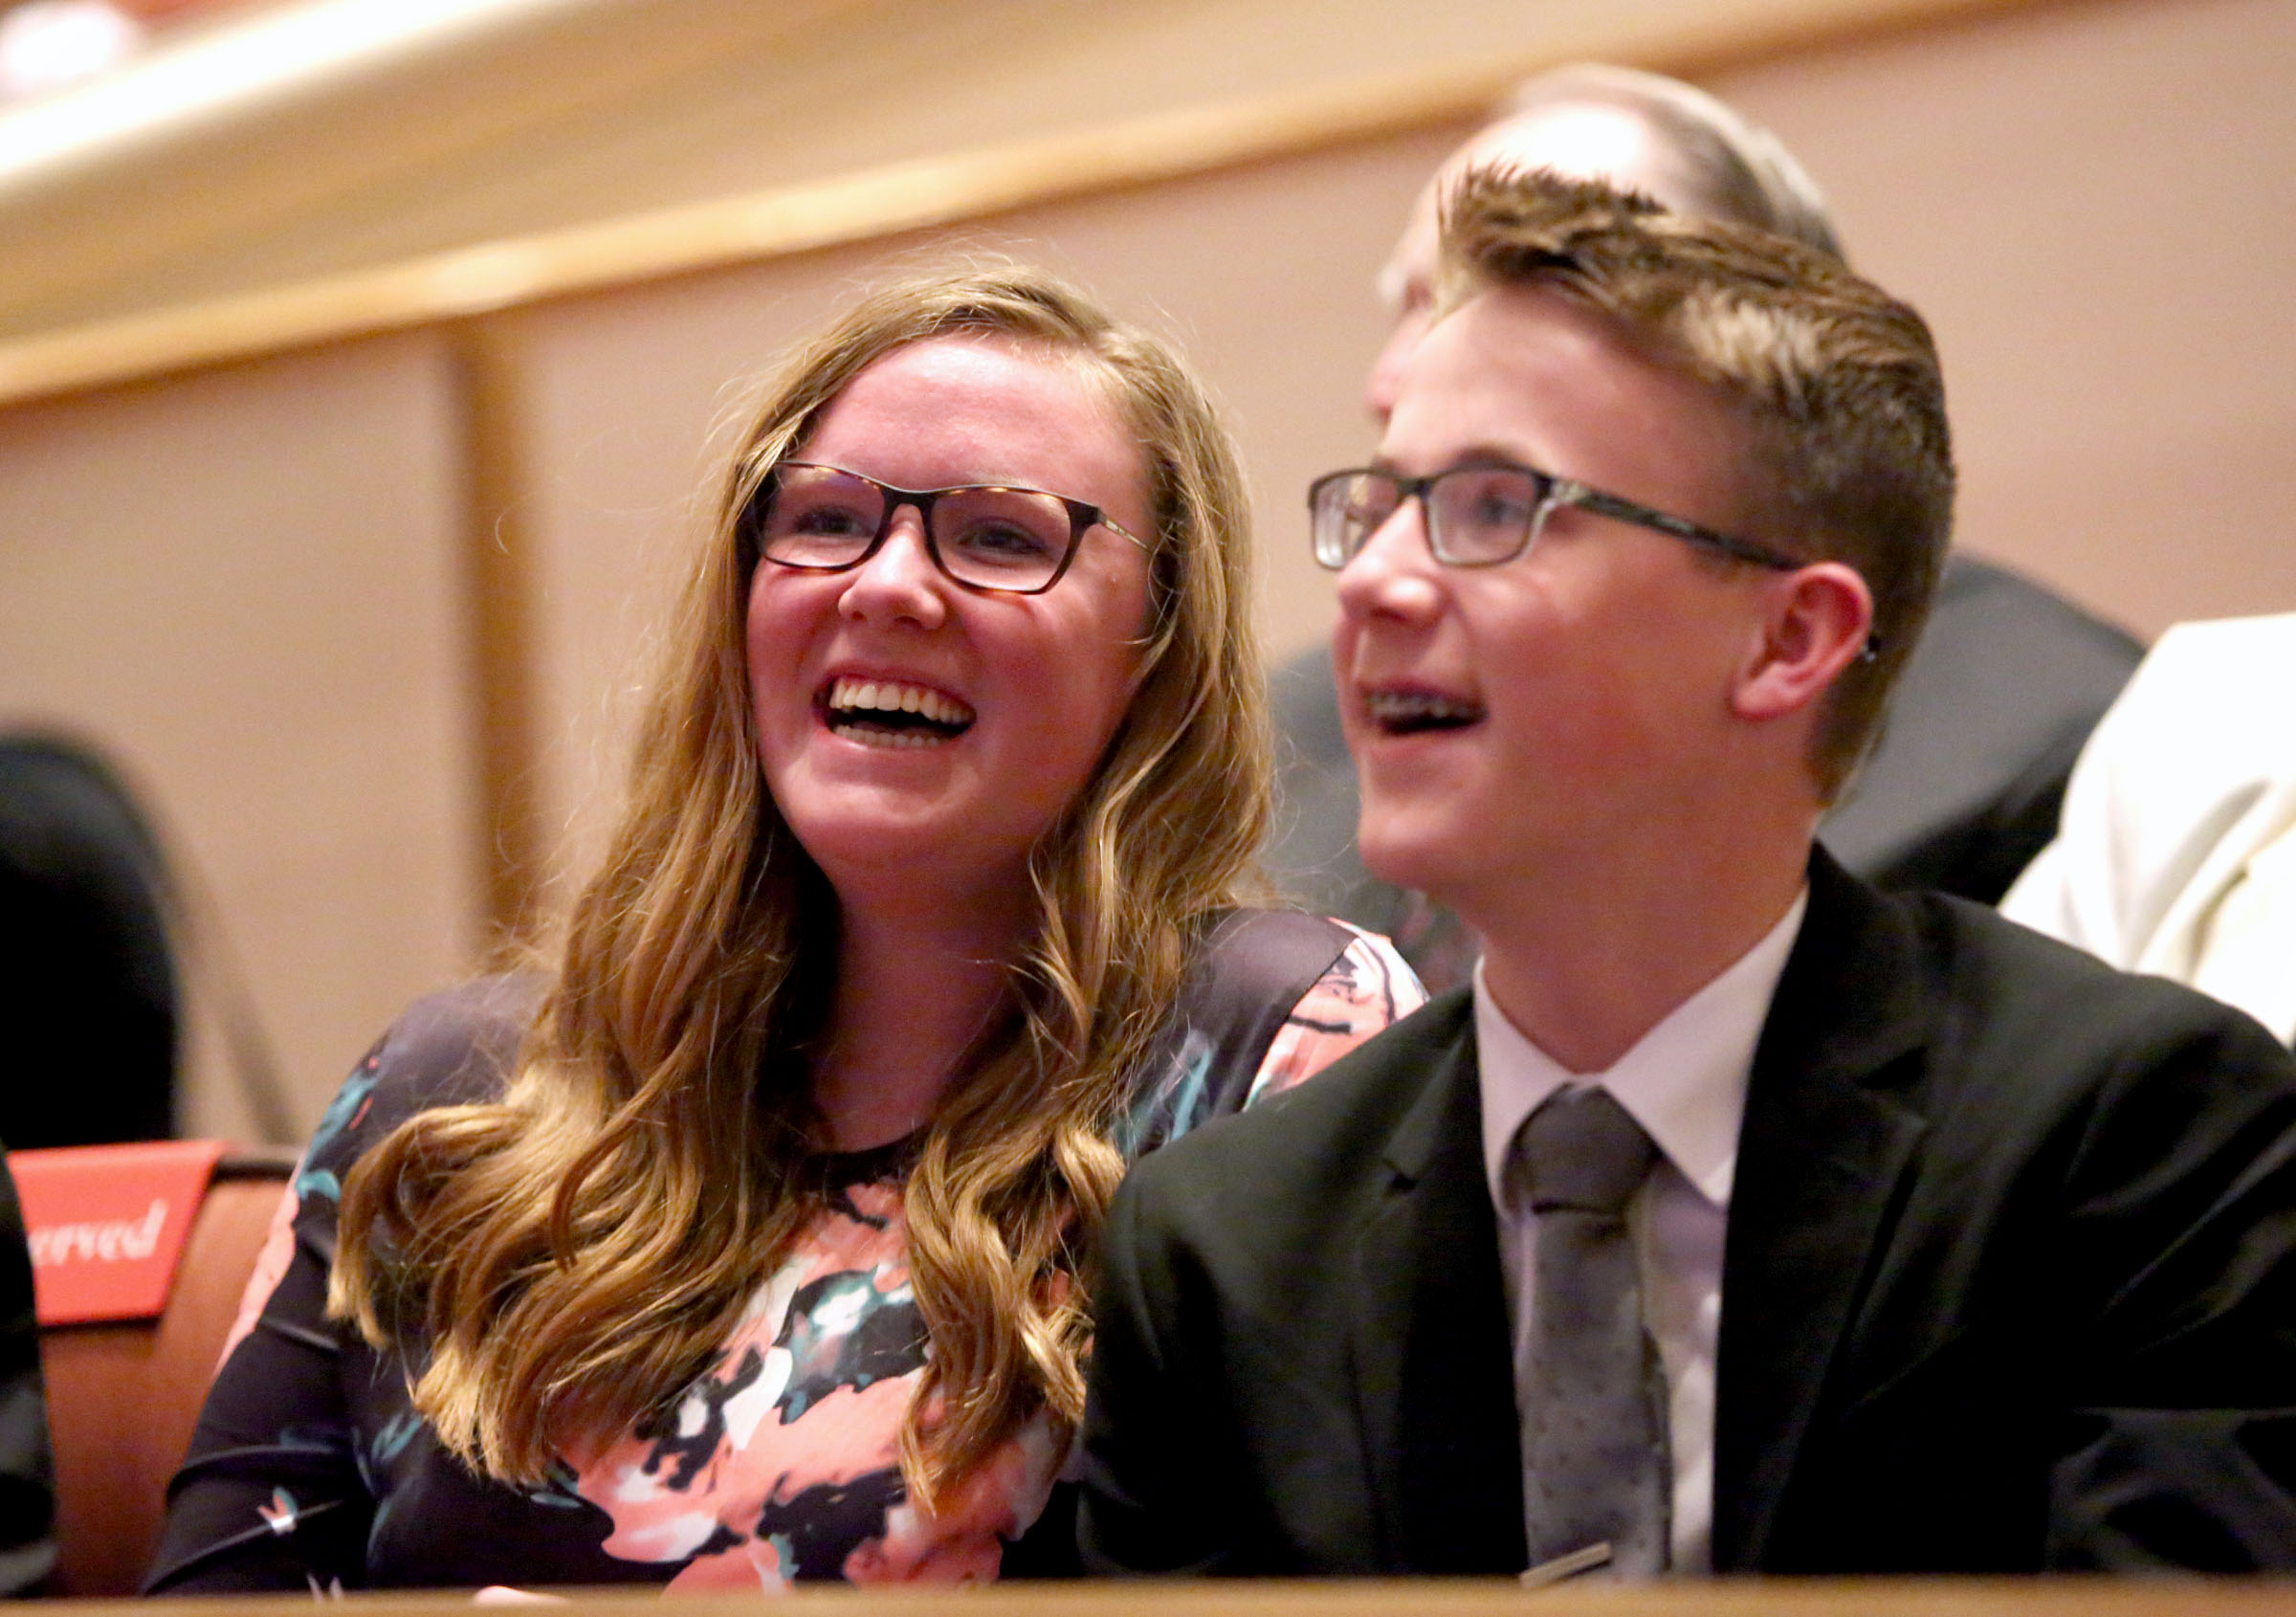 Conferencegoers react to President Russell M. Nelson's announcement that there will be seven new temples around the world during the Sunday afternoon session of the 188th Annual General Conference of The Church of Jesus Christ of Latter-day Saints at the Conference Center in Salt Lake City on Sunday, April 1, 2018.